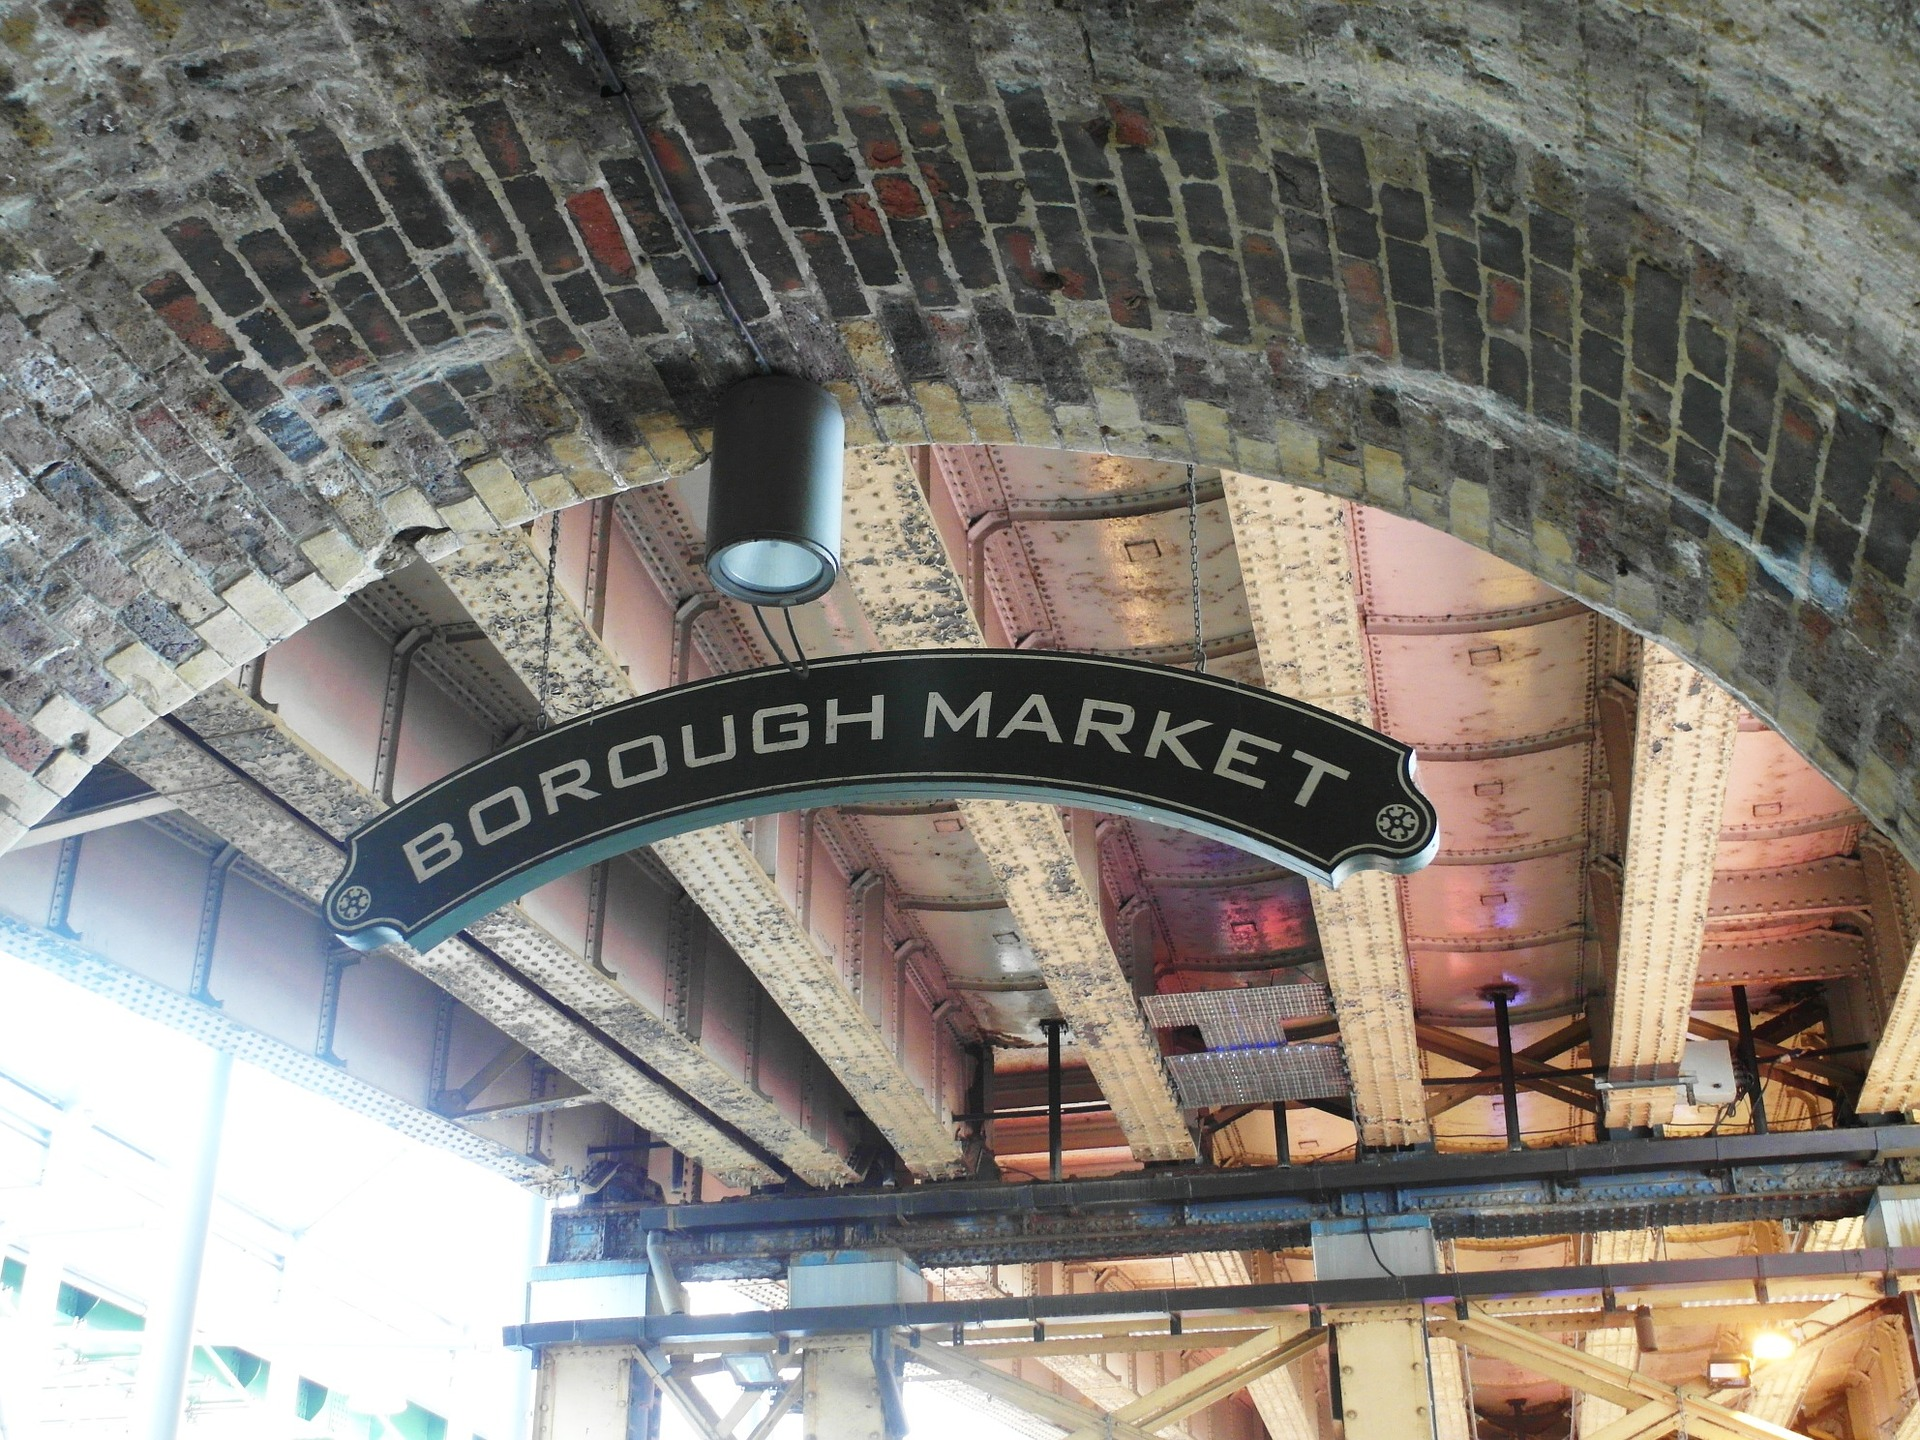 borough-market-678706_1920.jpg